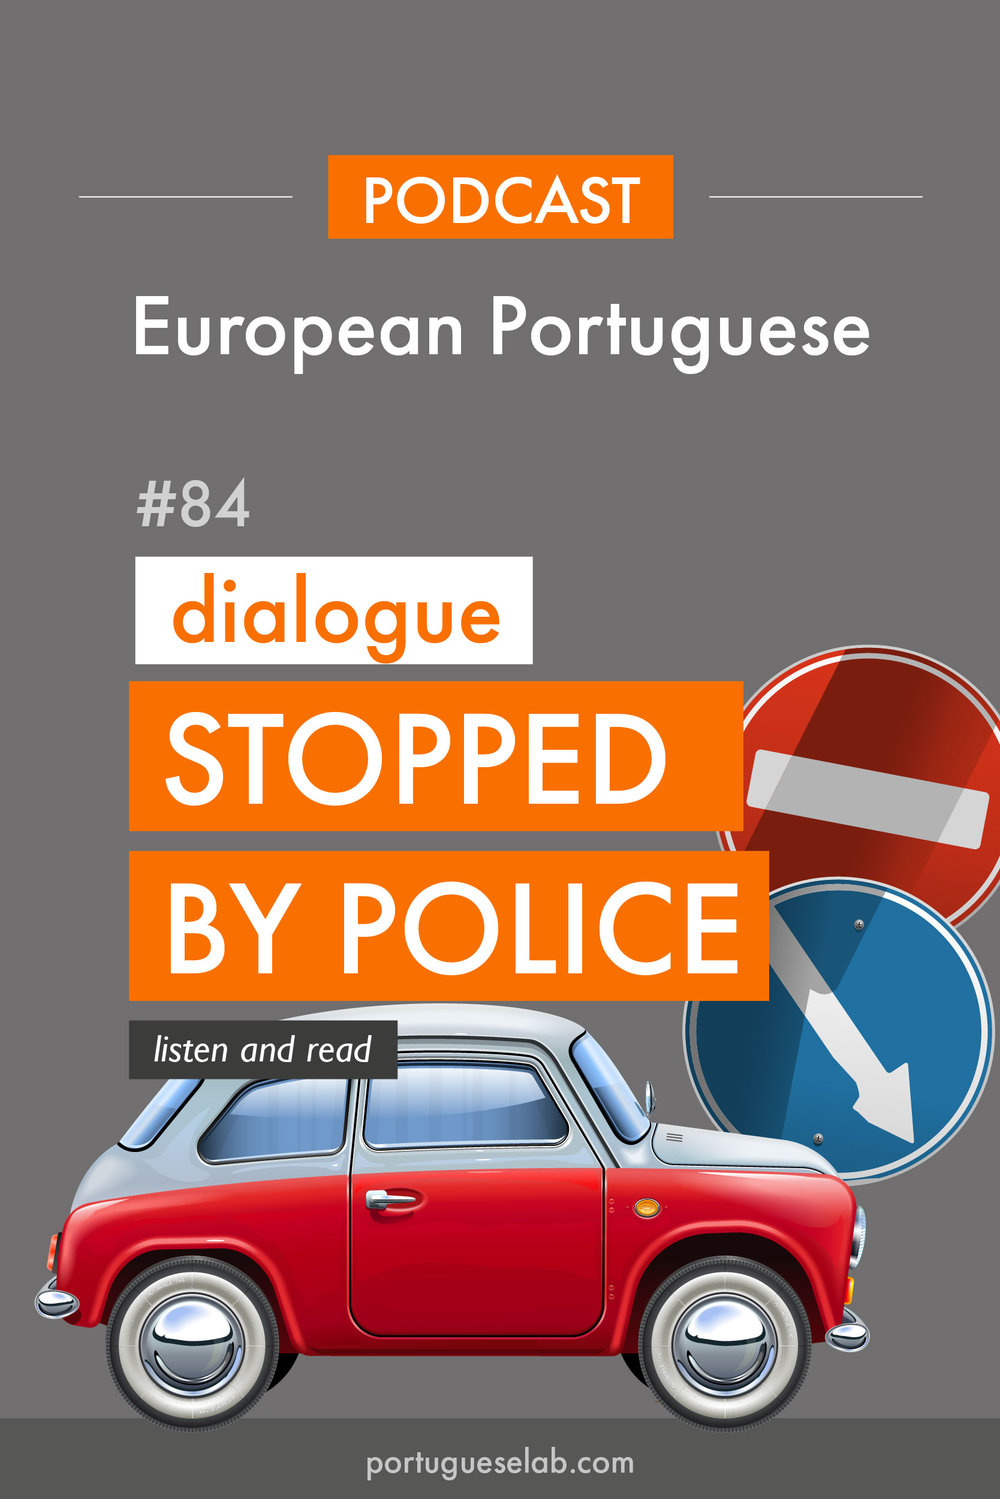 Portuguese Lab Podcast - European Portuguese - 84 - Stopped by police in Portugal.jpg